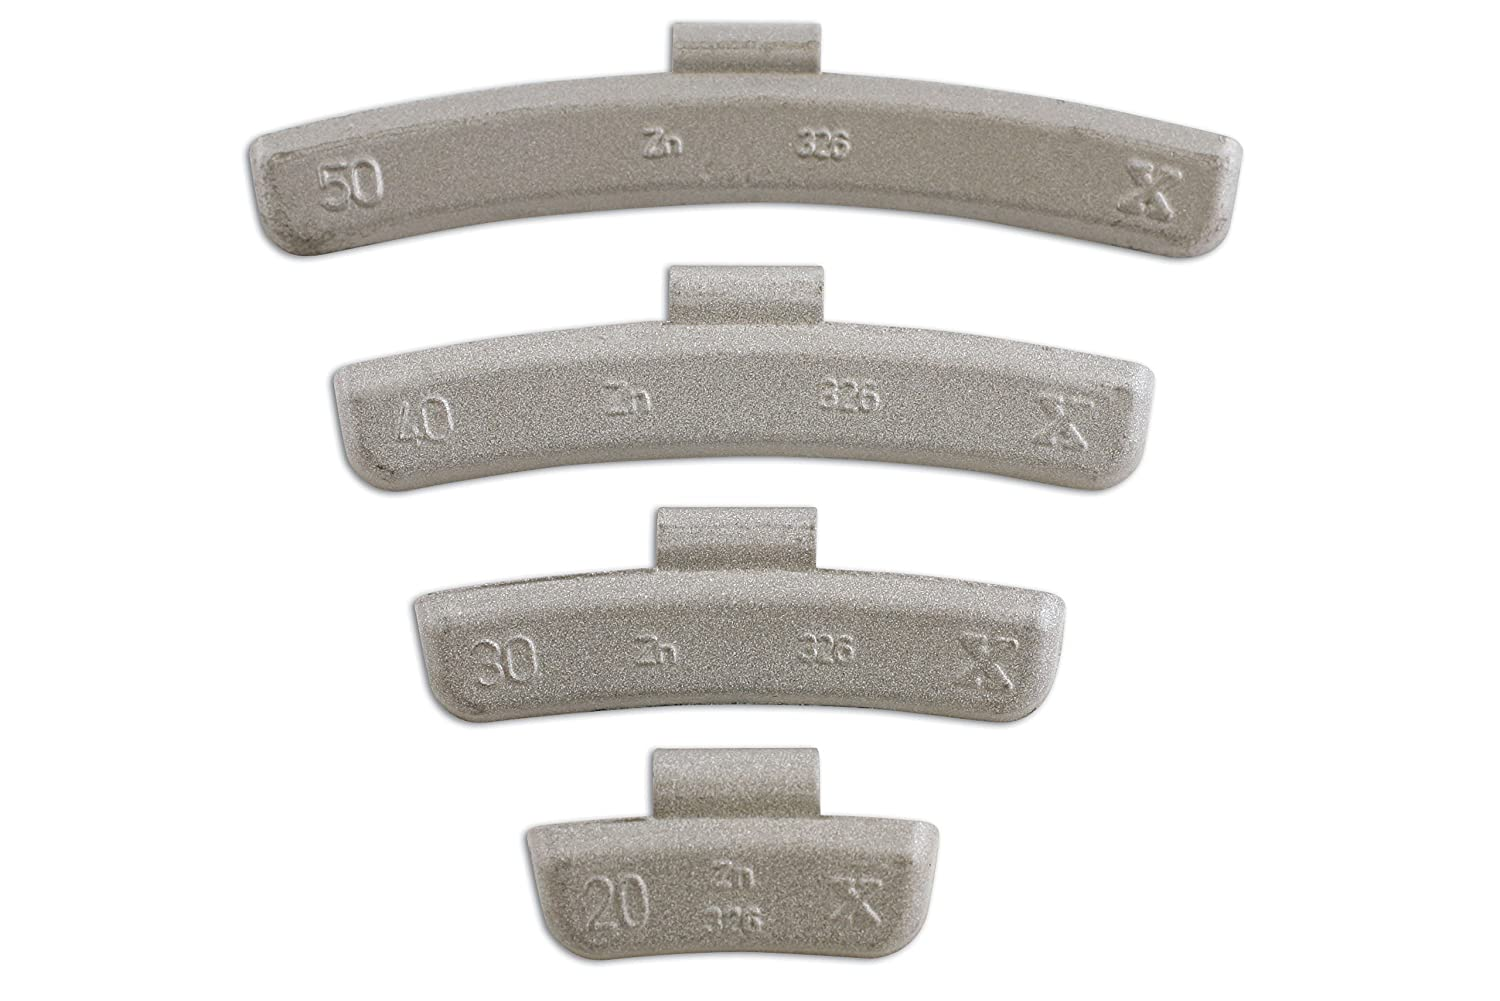 Connect 32857 25g Wheel Weights for Alloy Wheels (Box of 100) The Tool Connection Ltd.